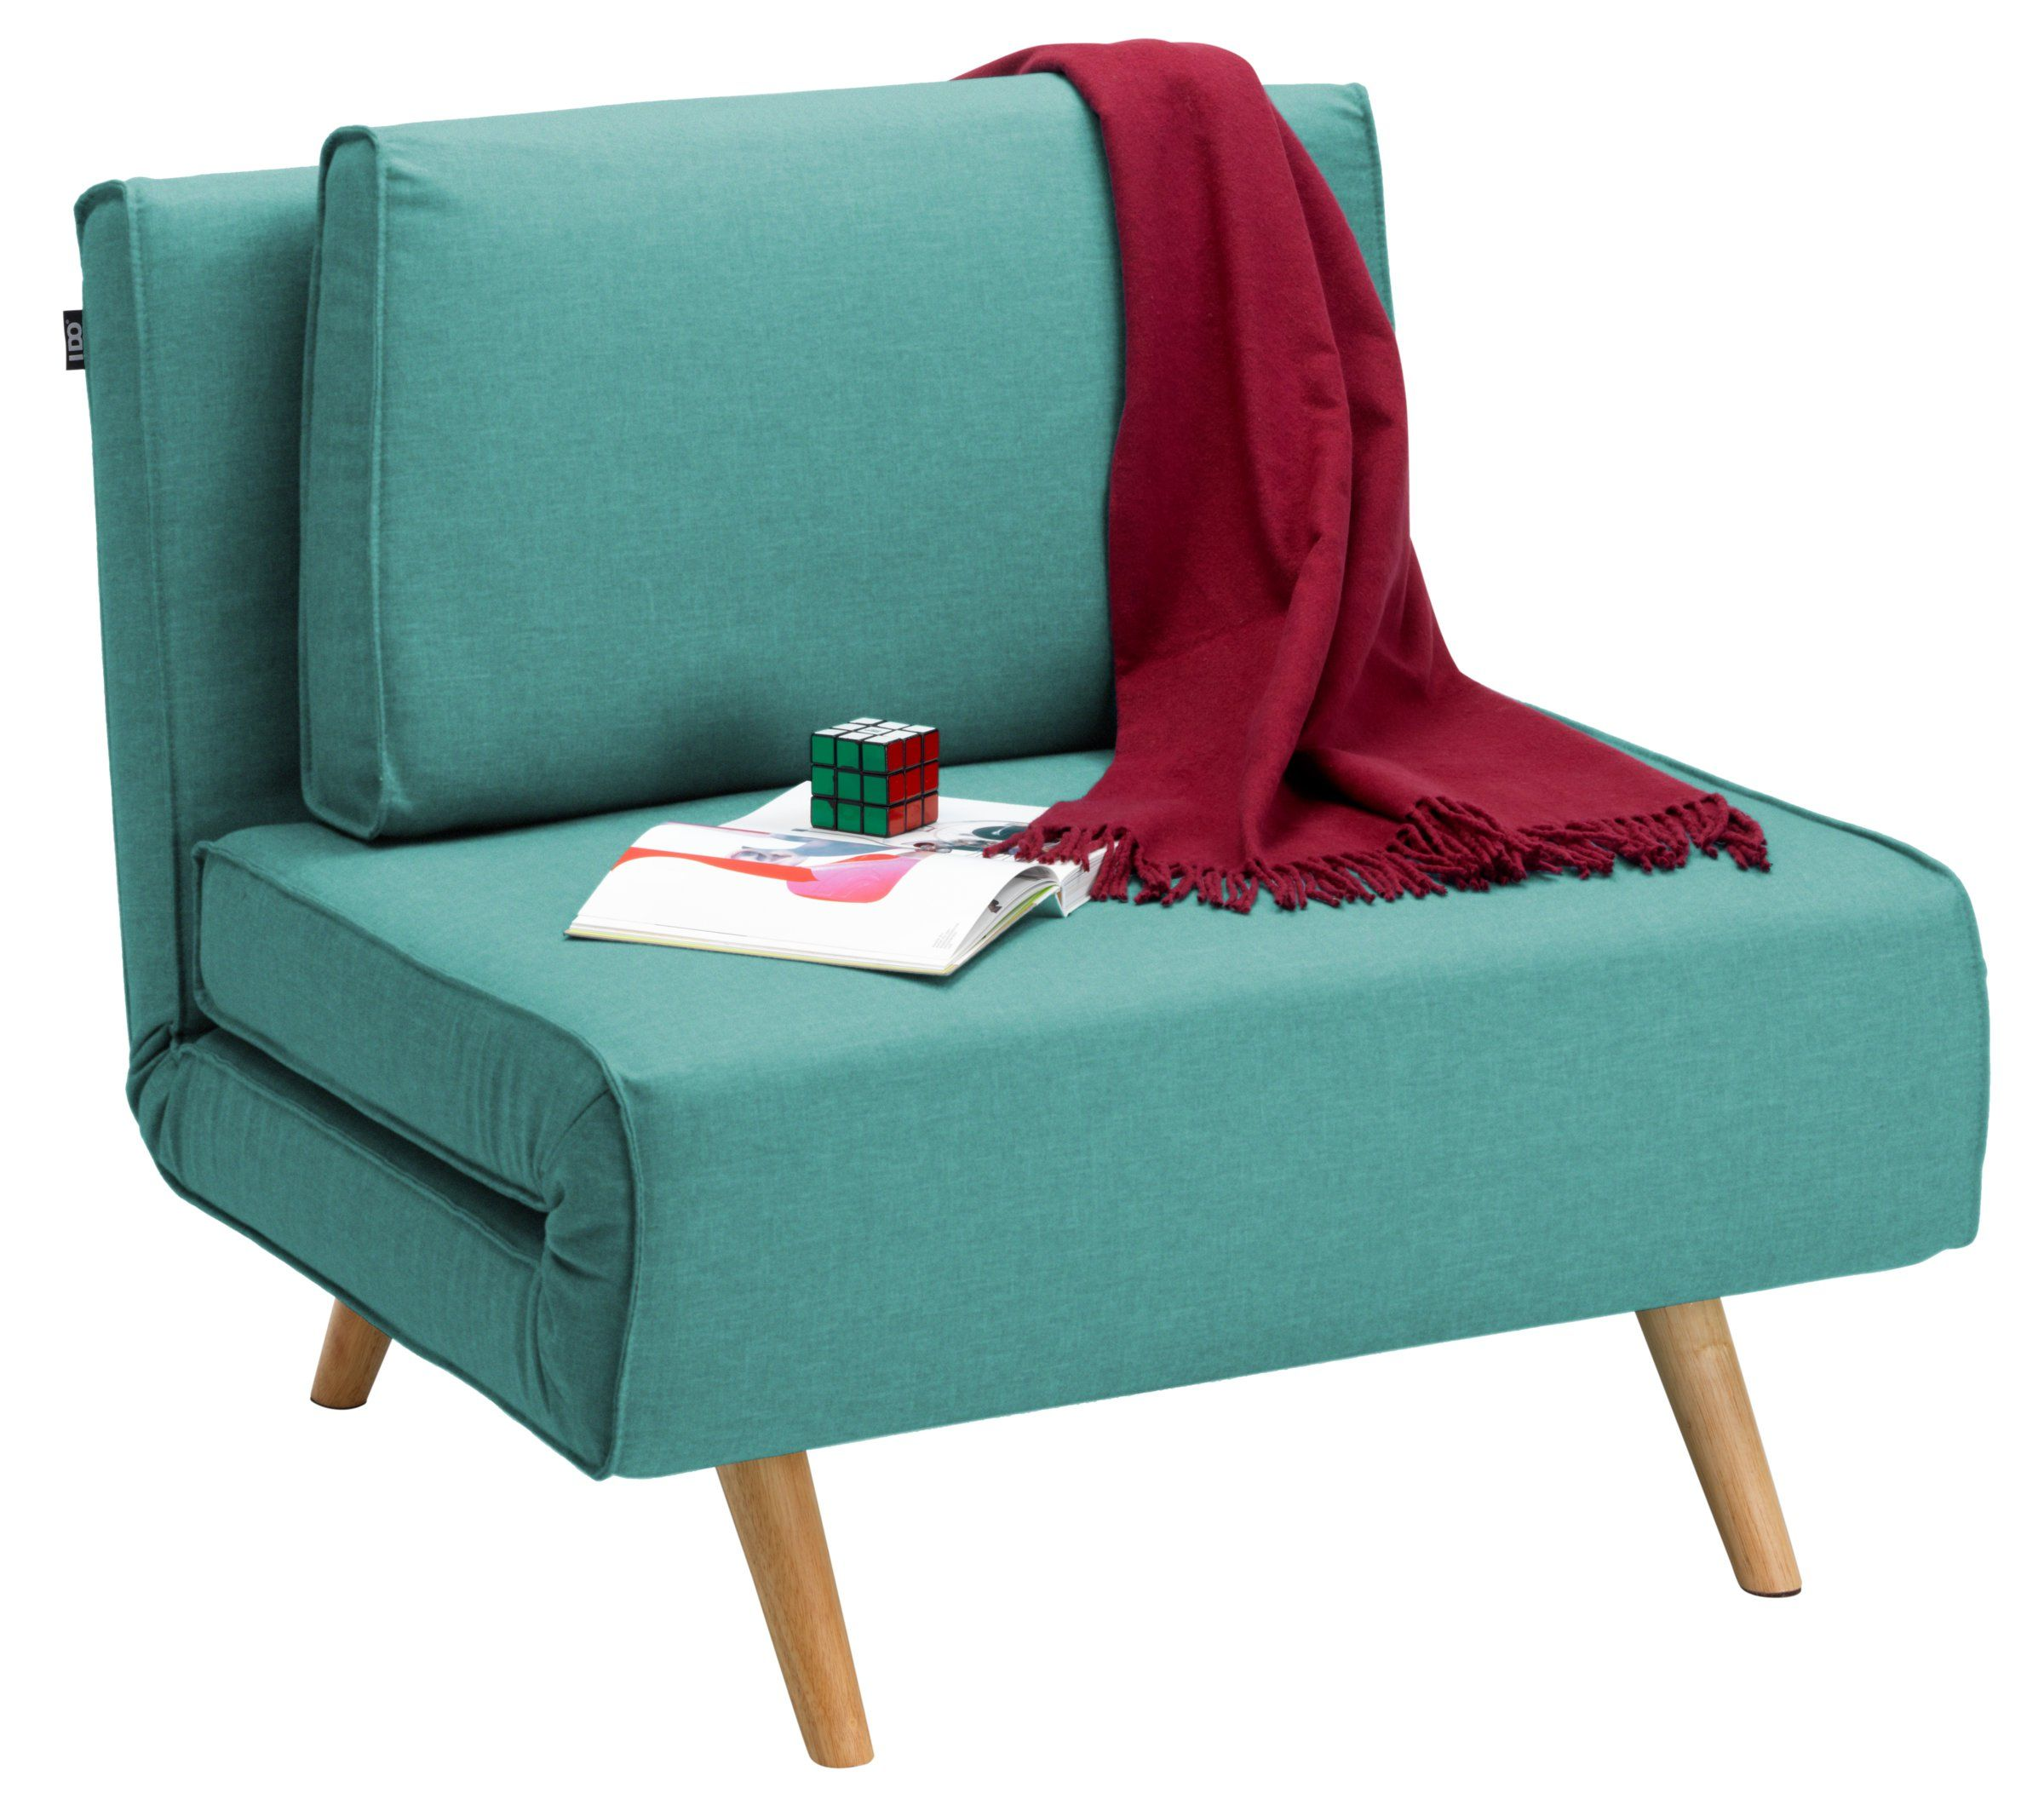 Bettsofas Micasa Filli Guest Bed Sofa Guest Bed Und Common Room